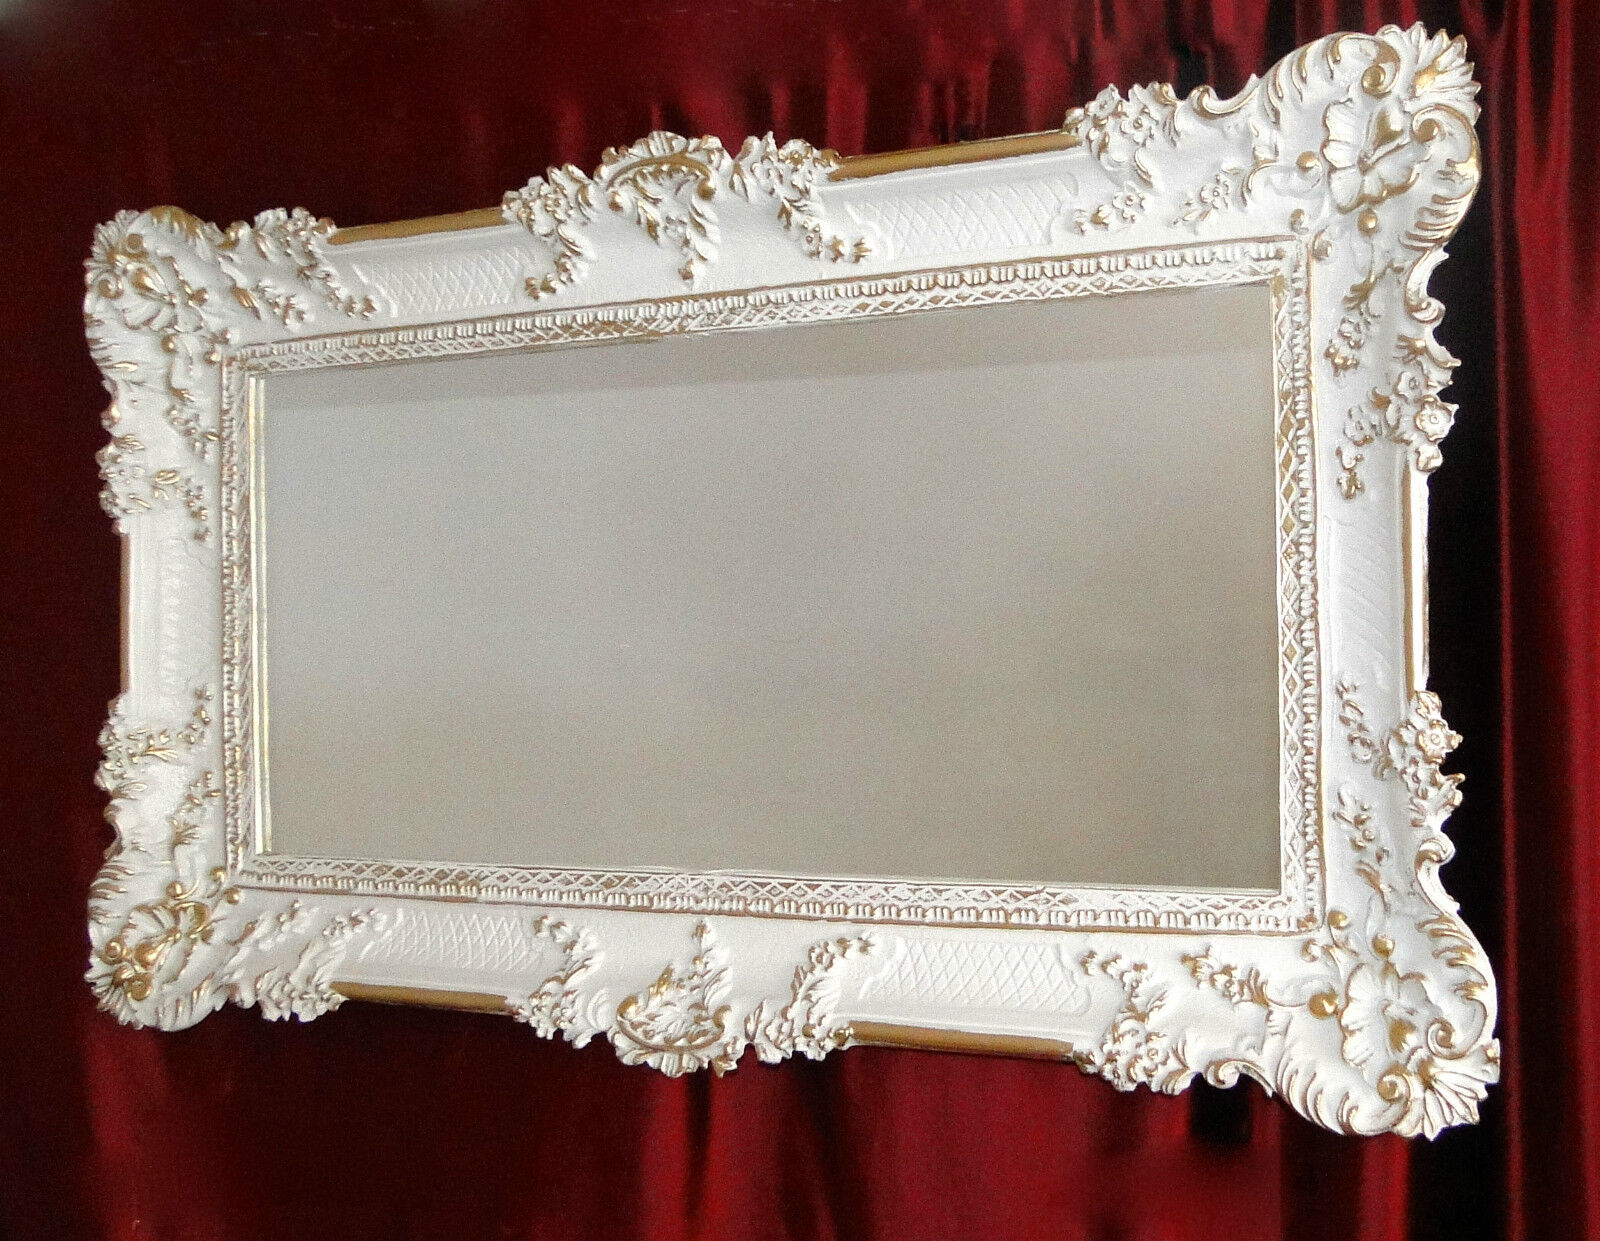 wall mirror white gold baroque antique 97x57 big decoration deco ebay. Black Bedroom Furniture Sets. Home Design Ideas